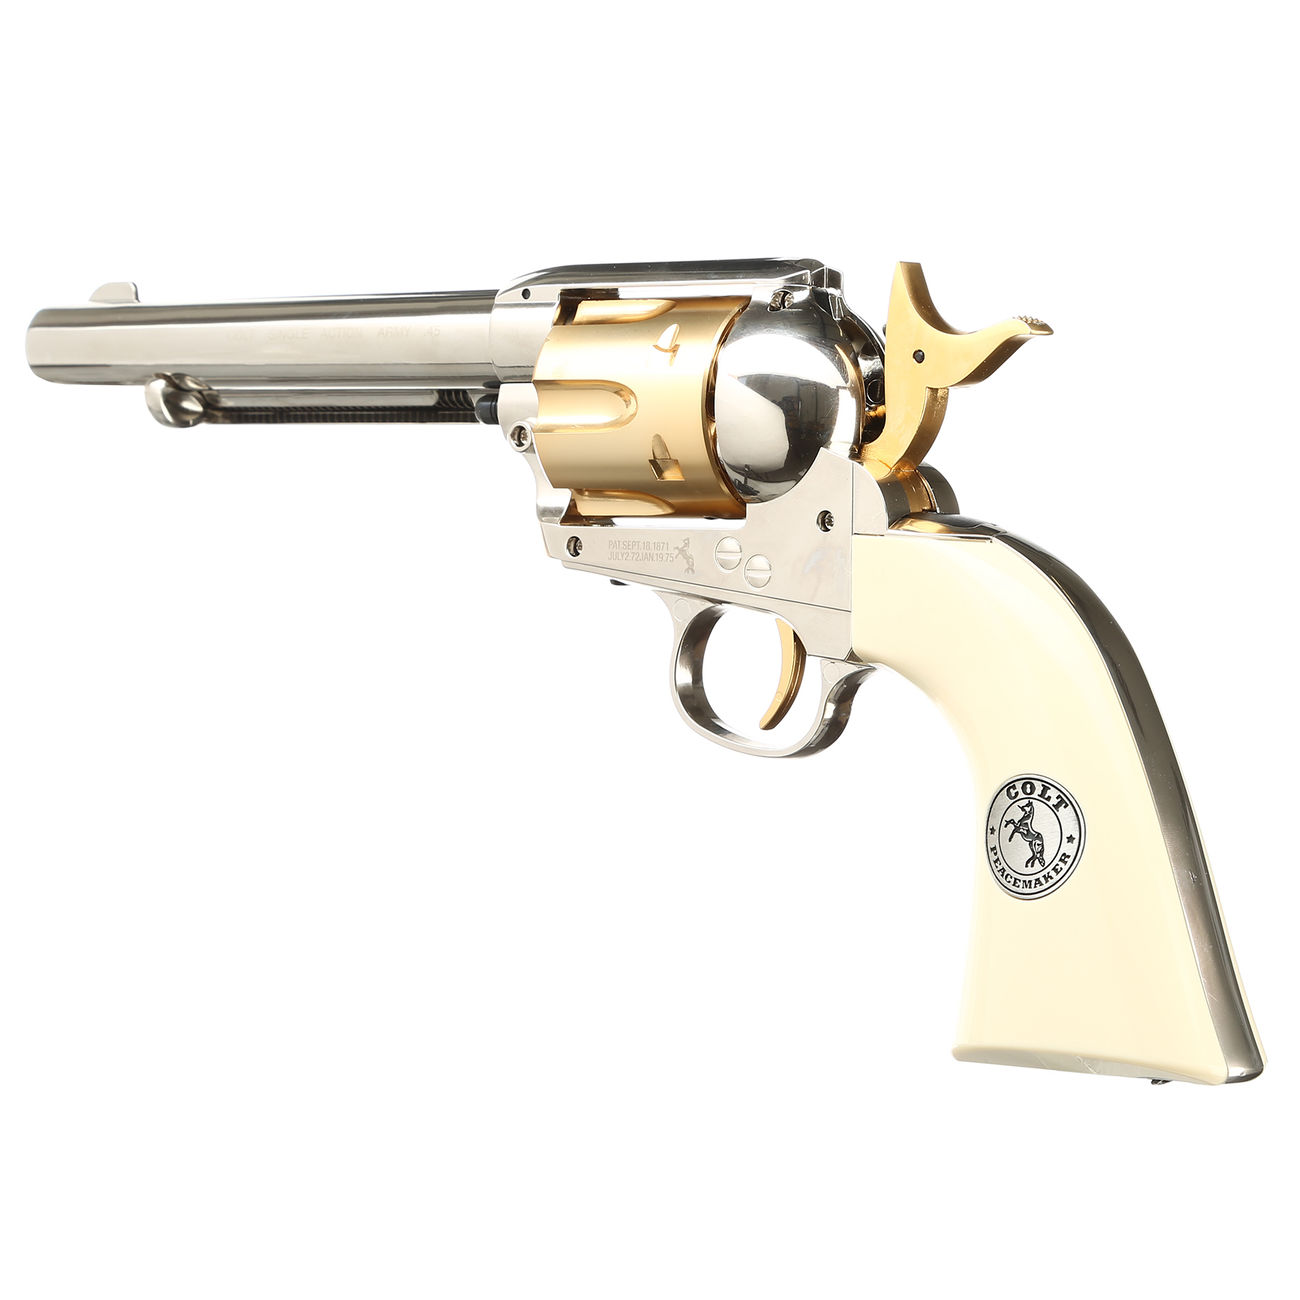 Colt Single Action Army 45 gold / nickel finish CO2 Revolver Kal. 4,5mm Diabolo gezogener Lauf 2